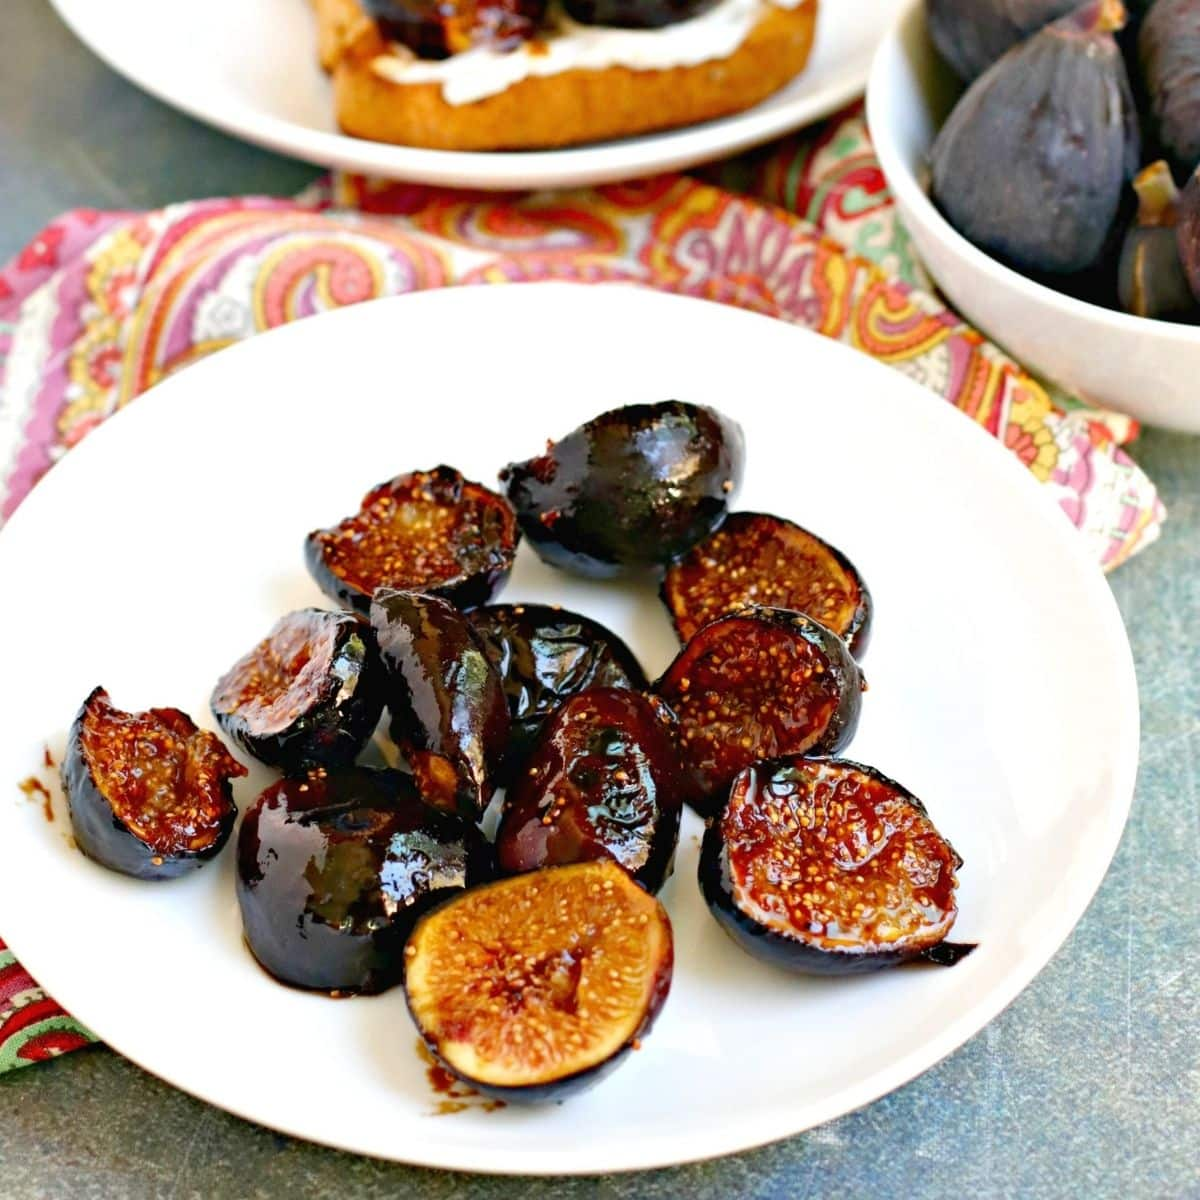 Caramelized figs on a plate